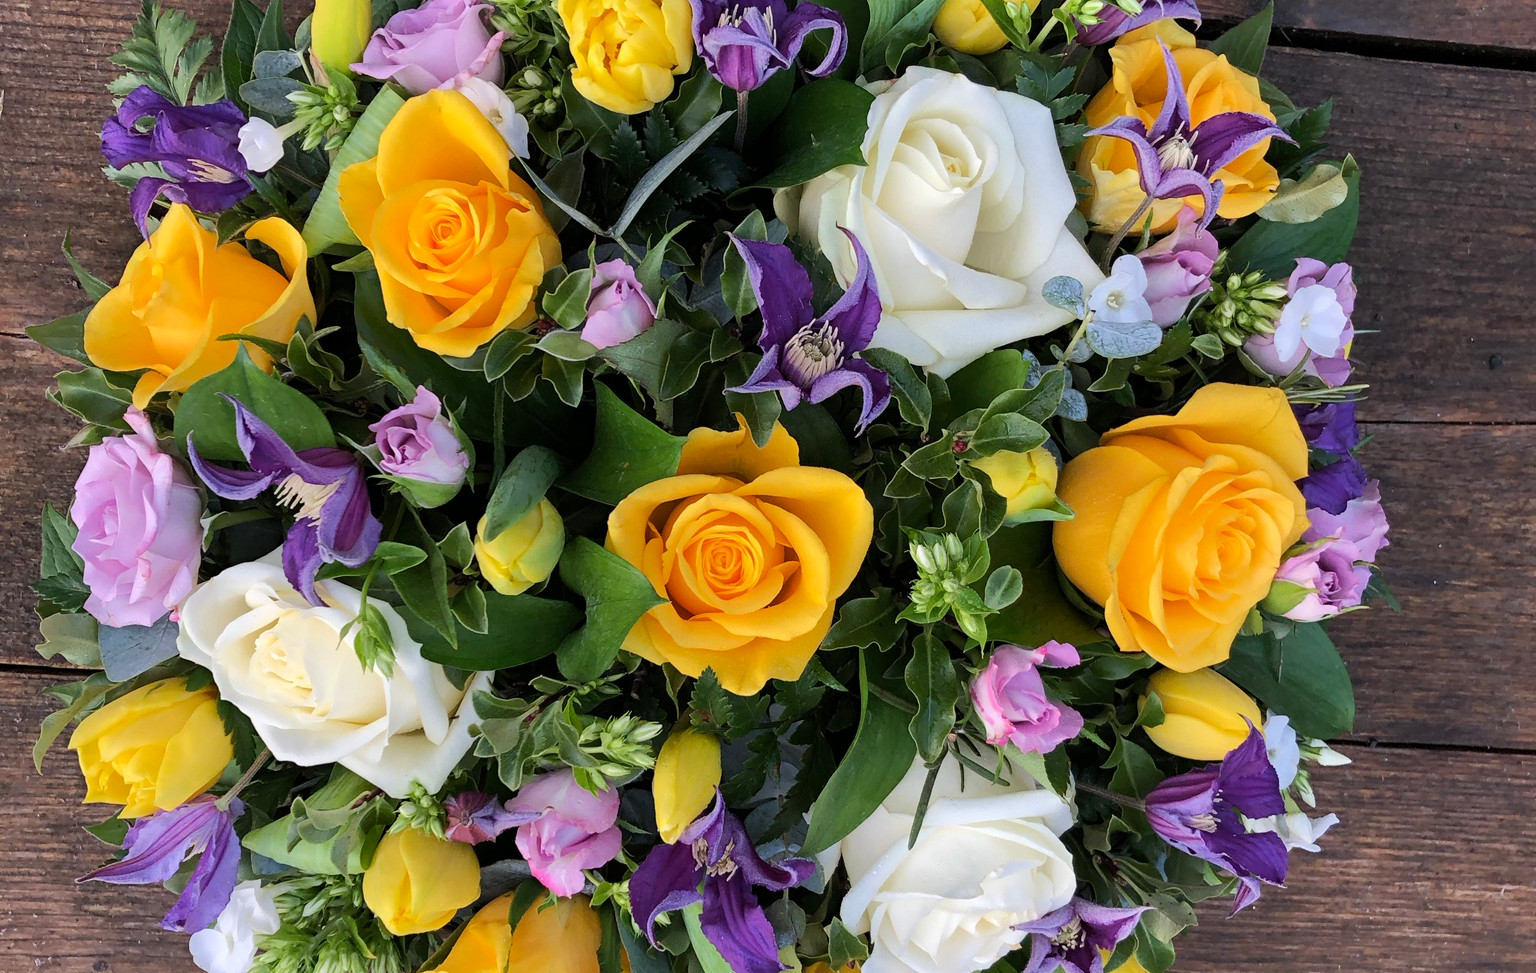 Funeral Posy - Yellow Roses with purple and white